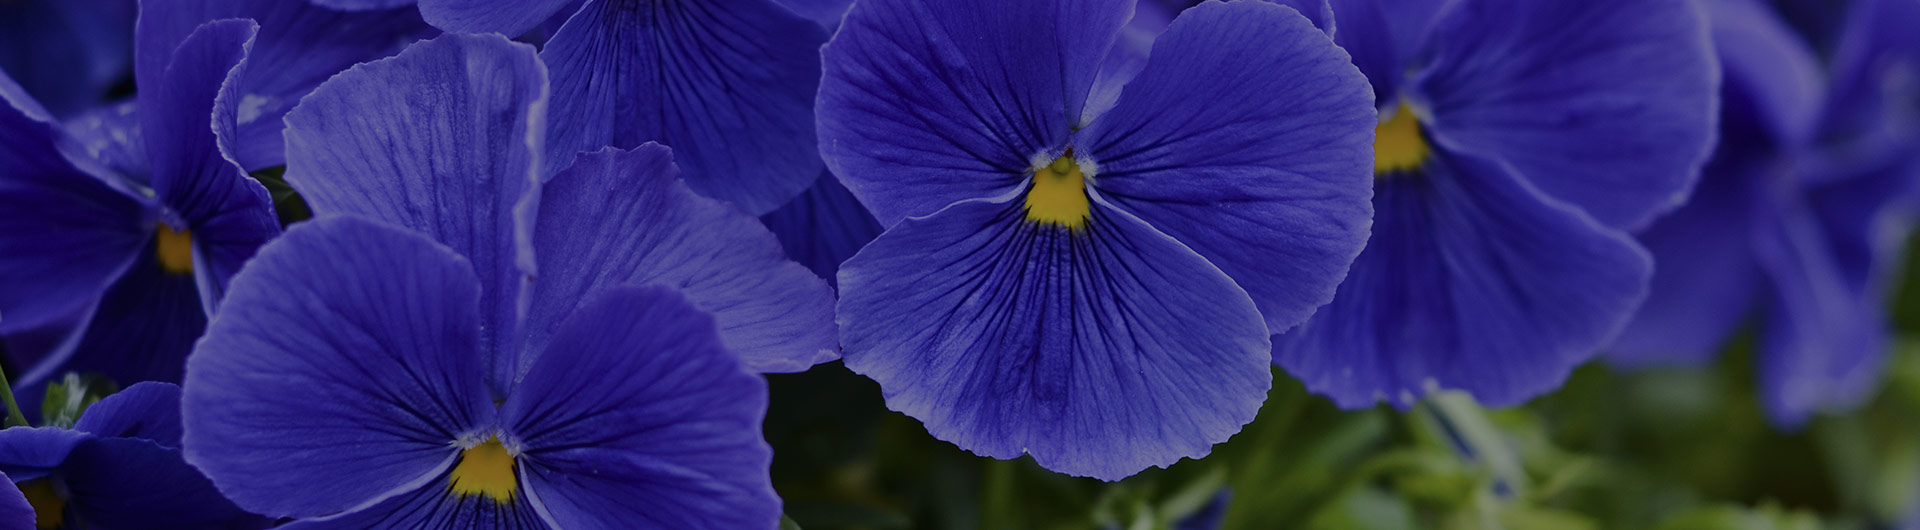 Blue violet flowers, New Jersey's state flower.